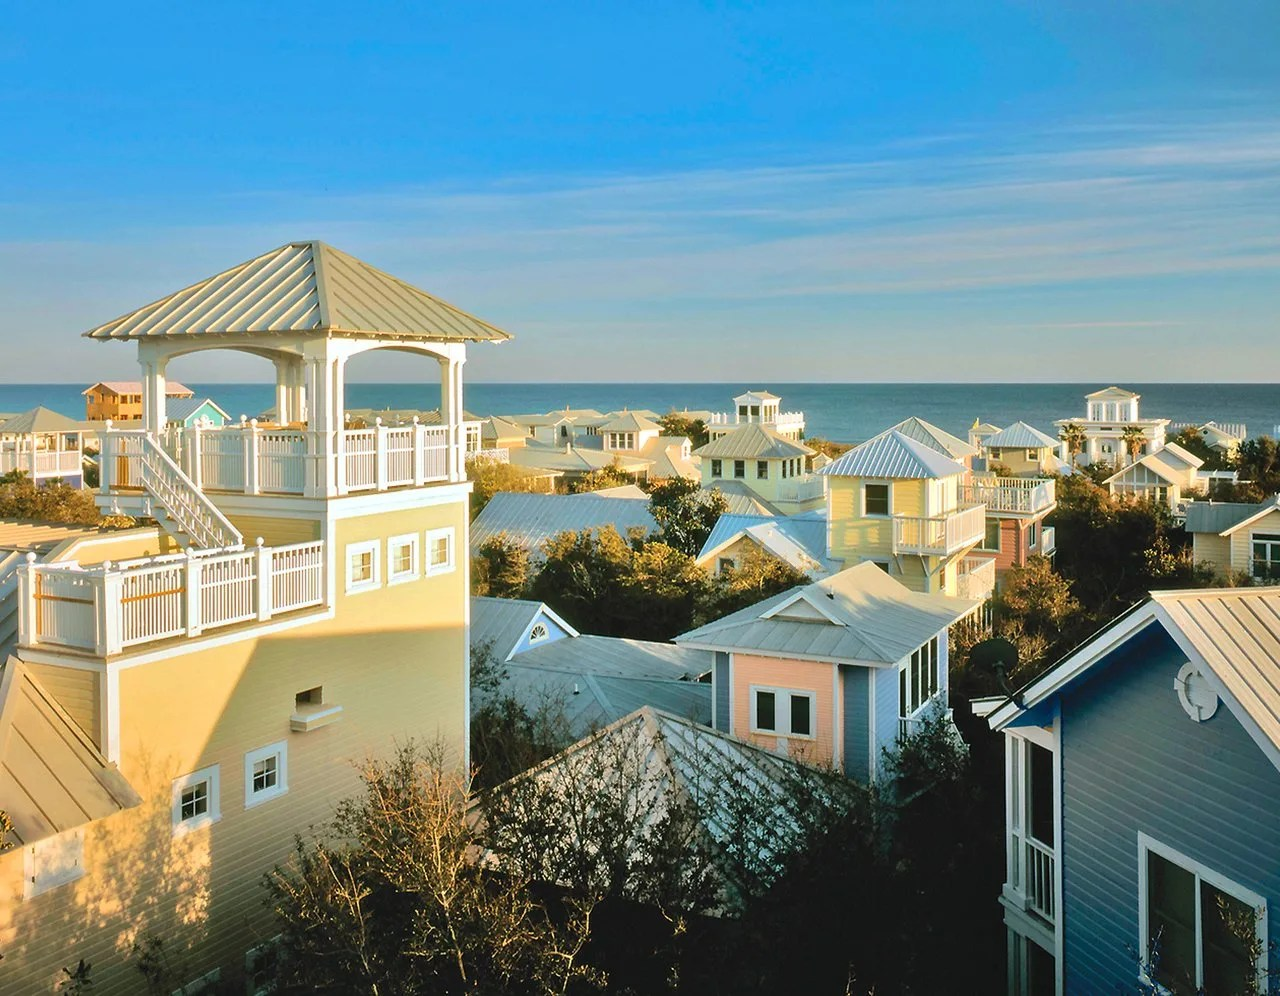 South Walton County Florida CVB - Seaside Roofscapes